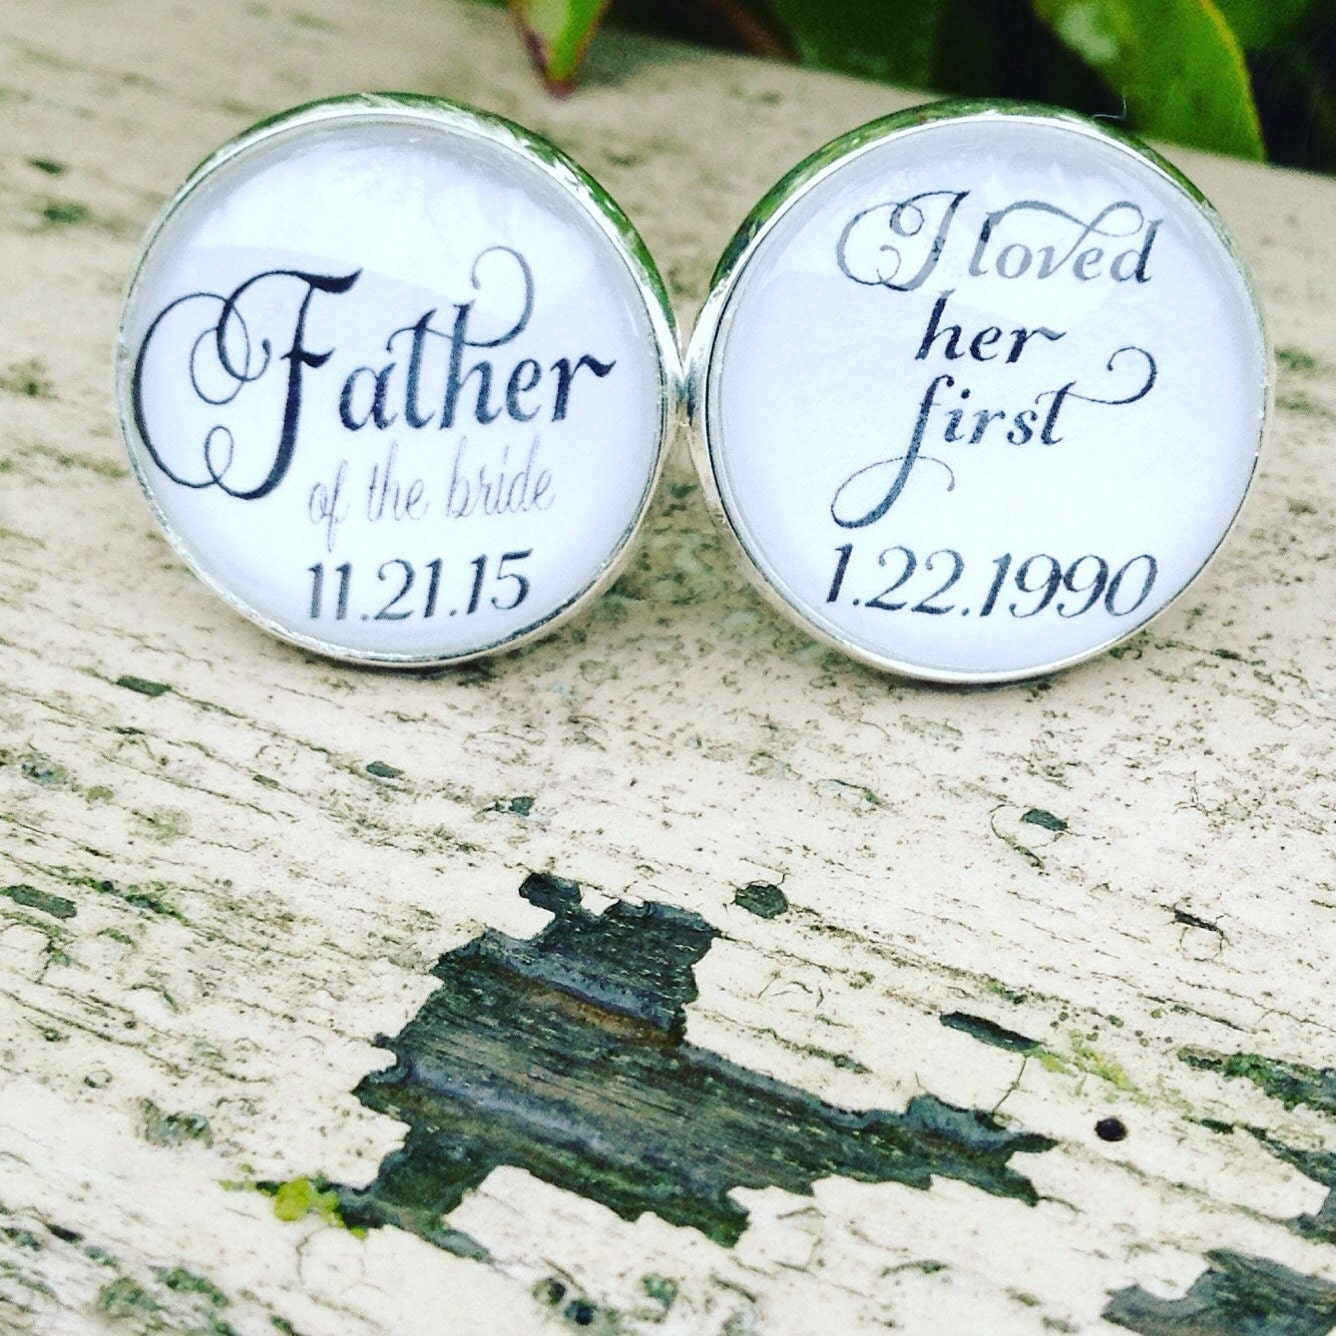 Father Of The Bride Personalized Cufflinks Personalized